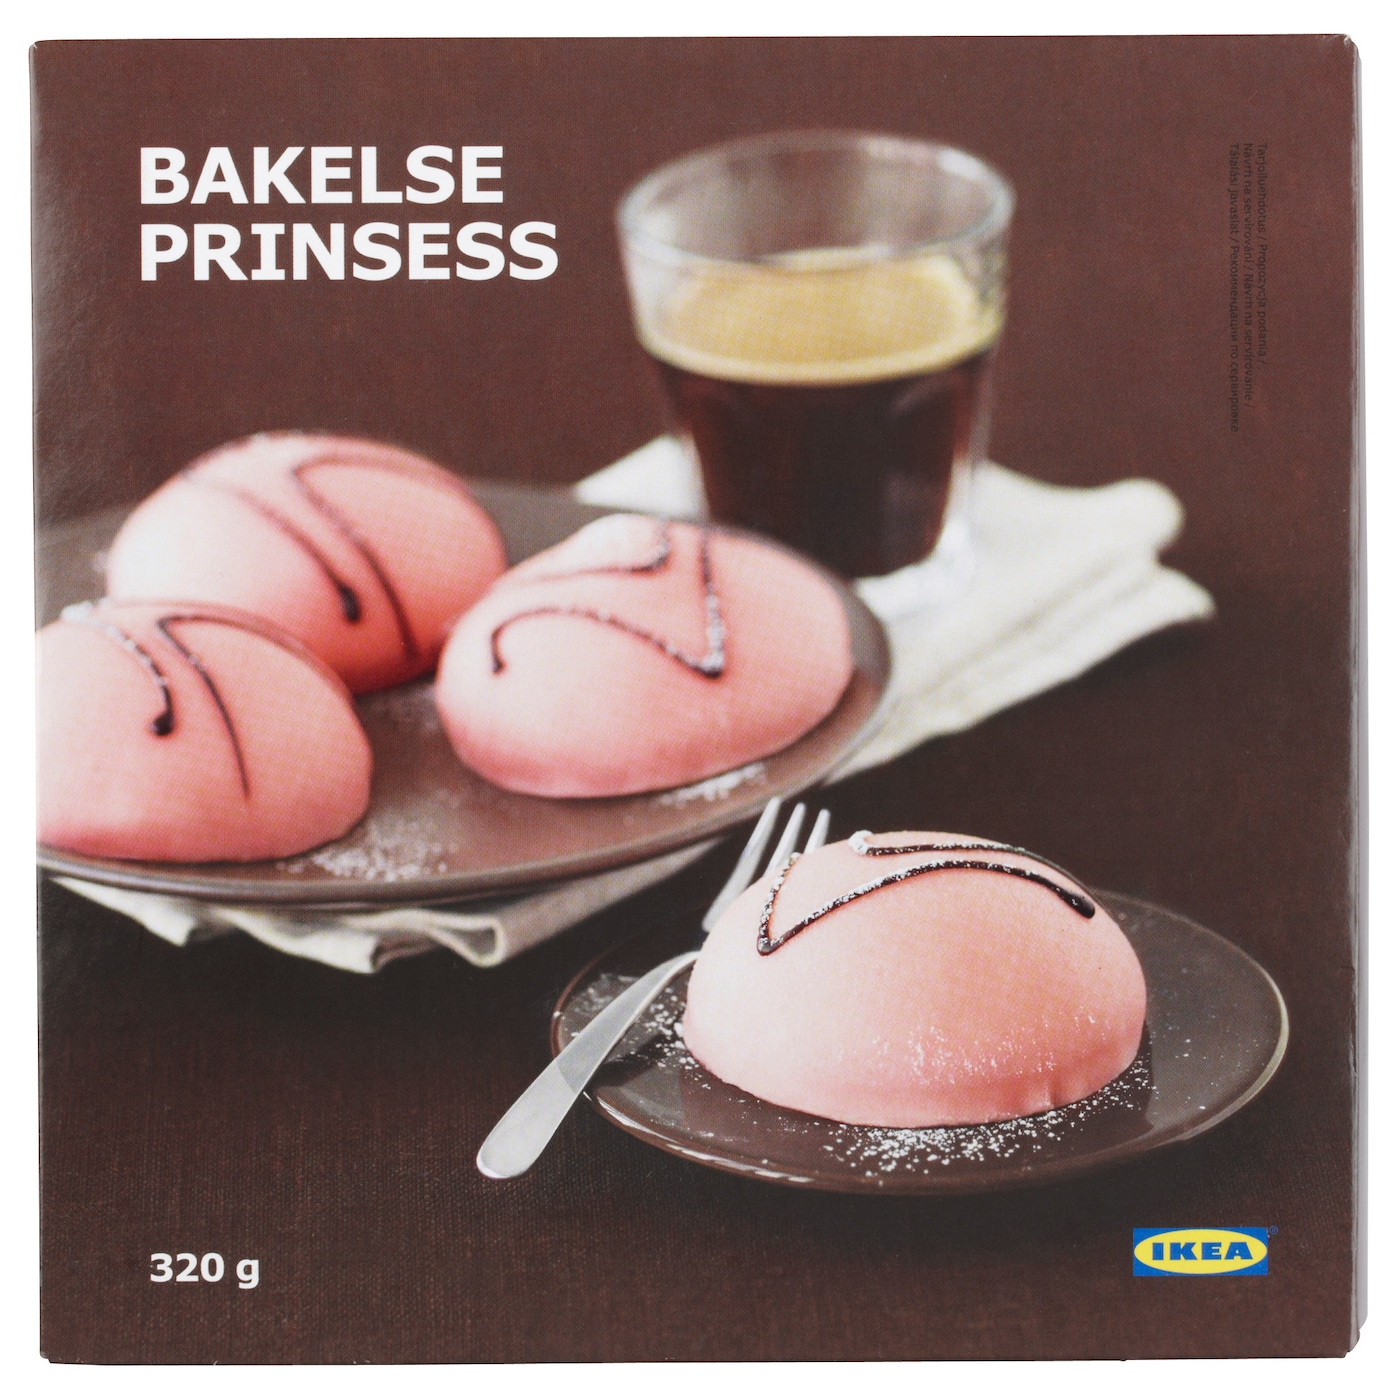 IKEA BAKELSE PRINSESS cream cake with marzipan